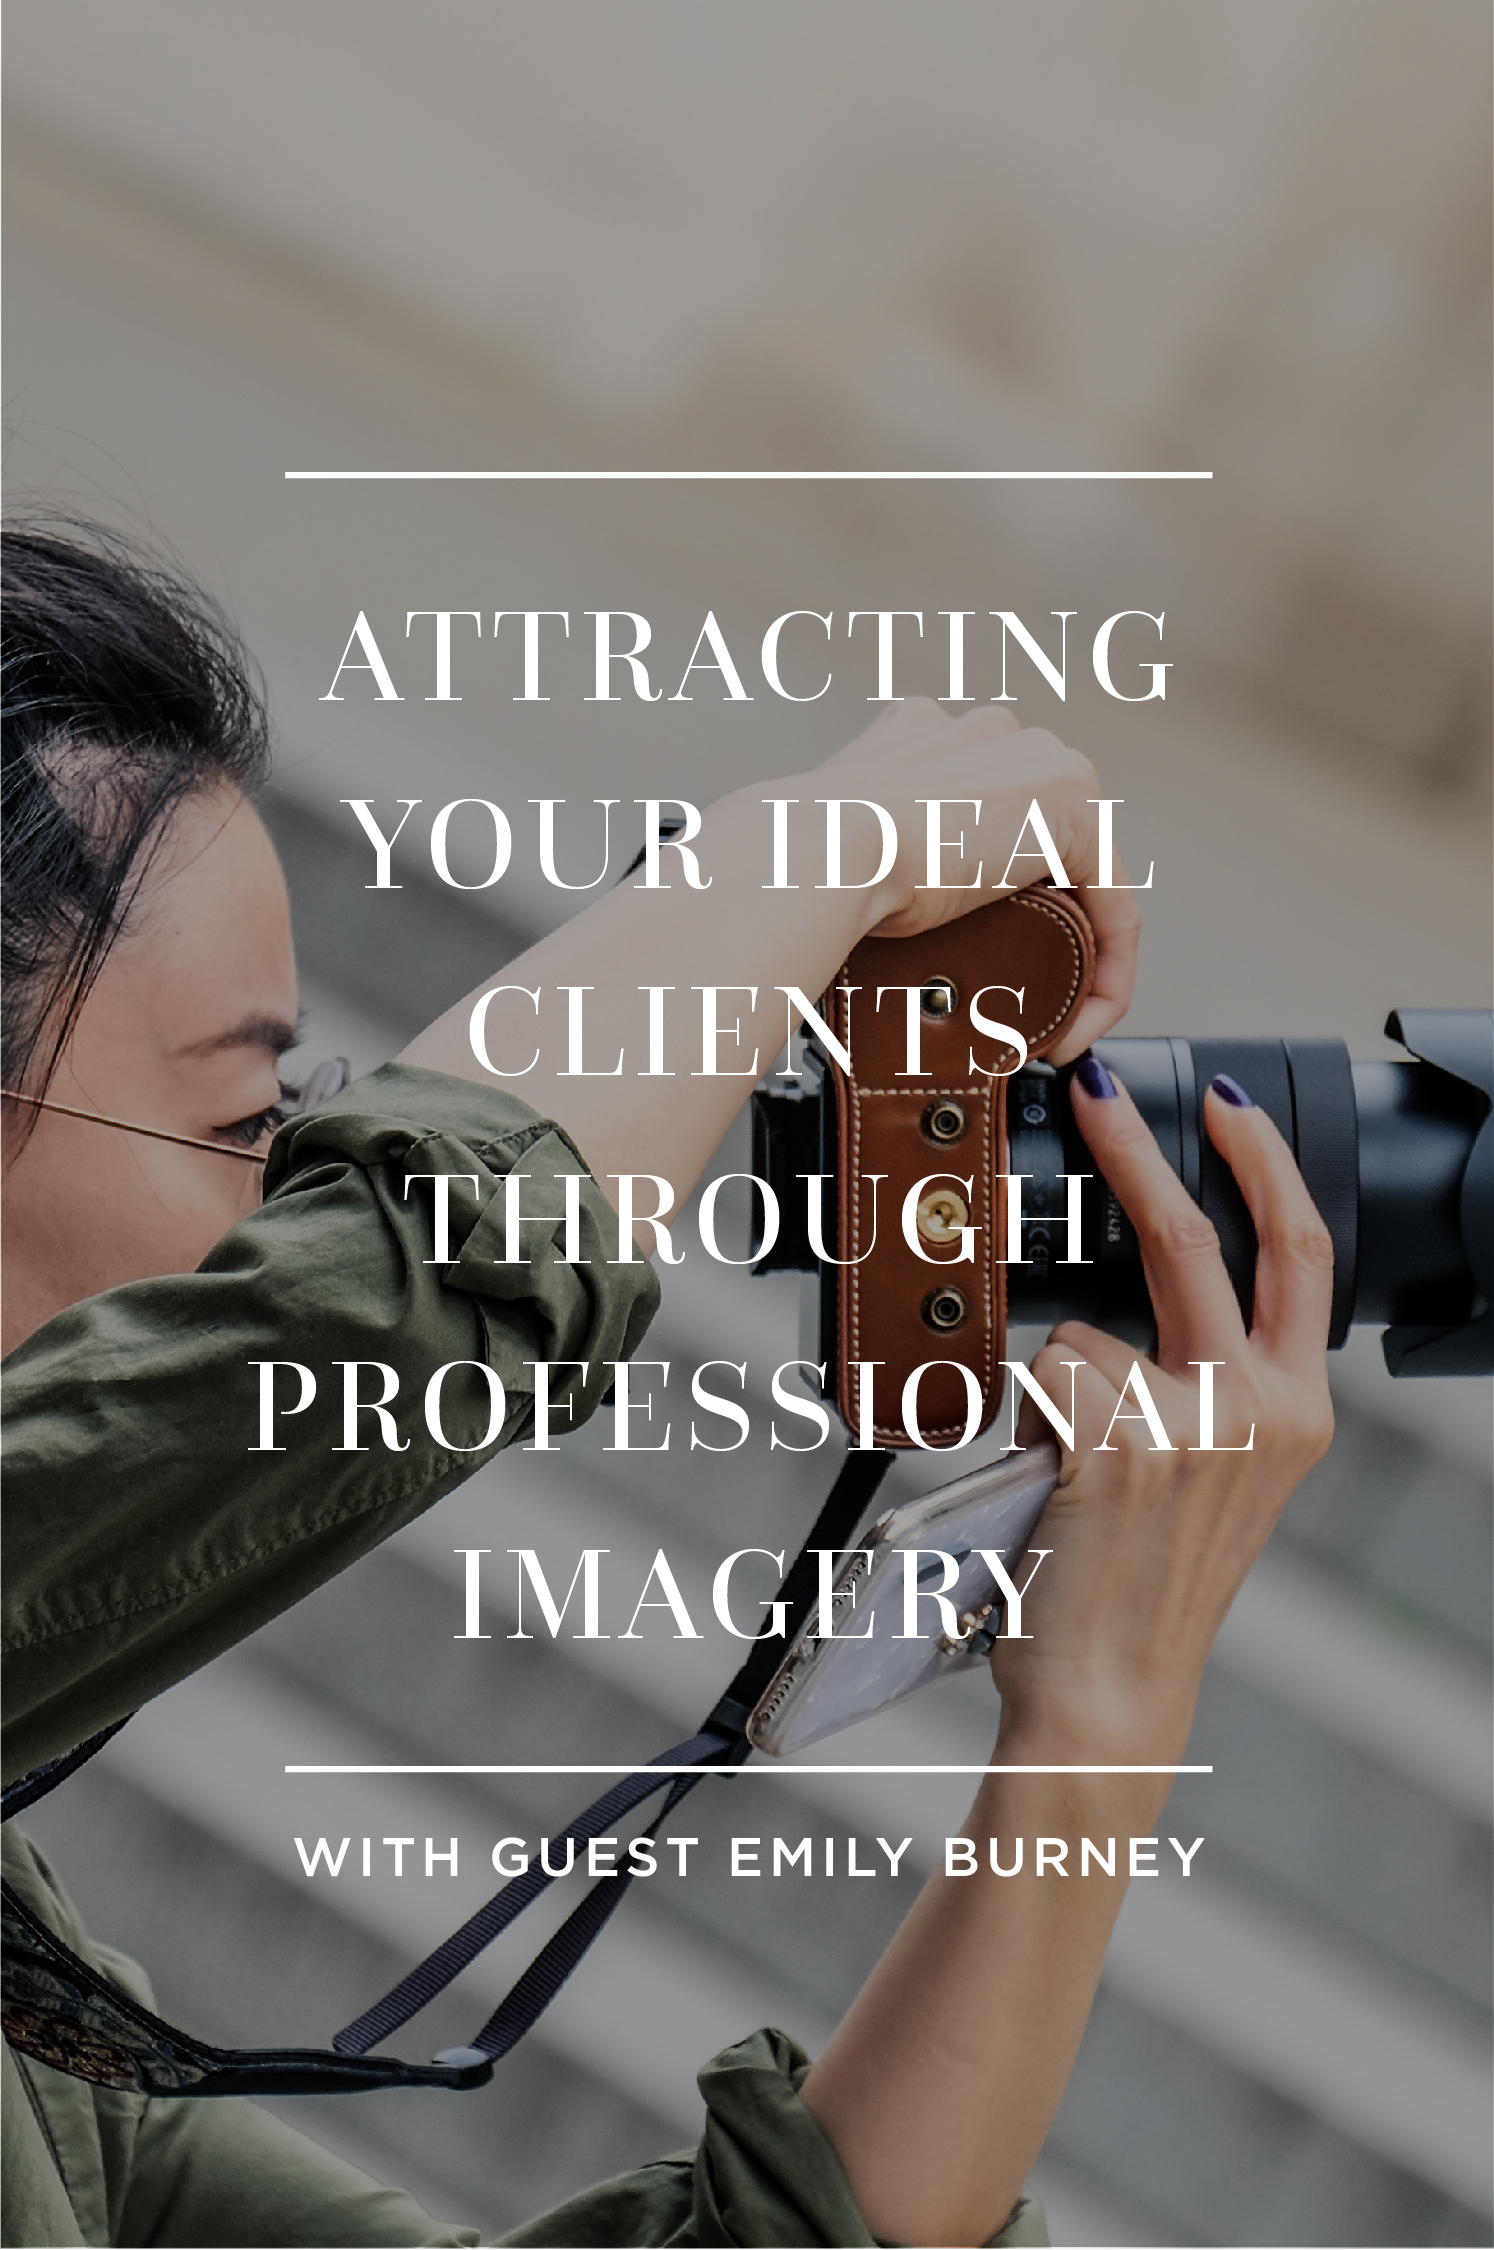 Blogpost-Attracting your idea clients through professional imagery-Hayley Bigham Designs-01.jpg